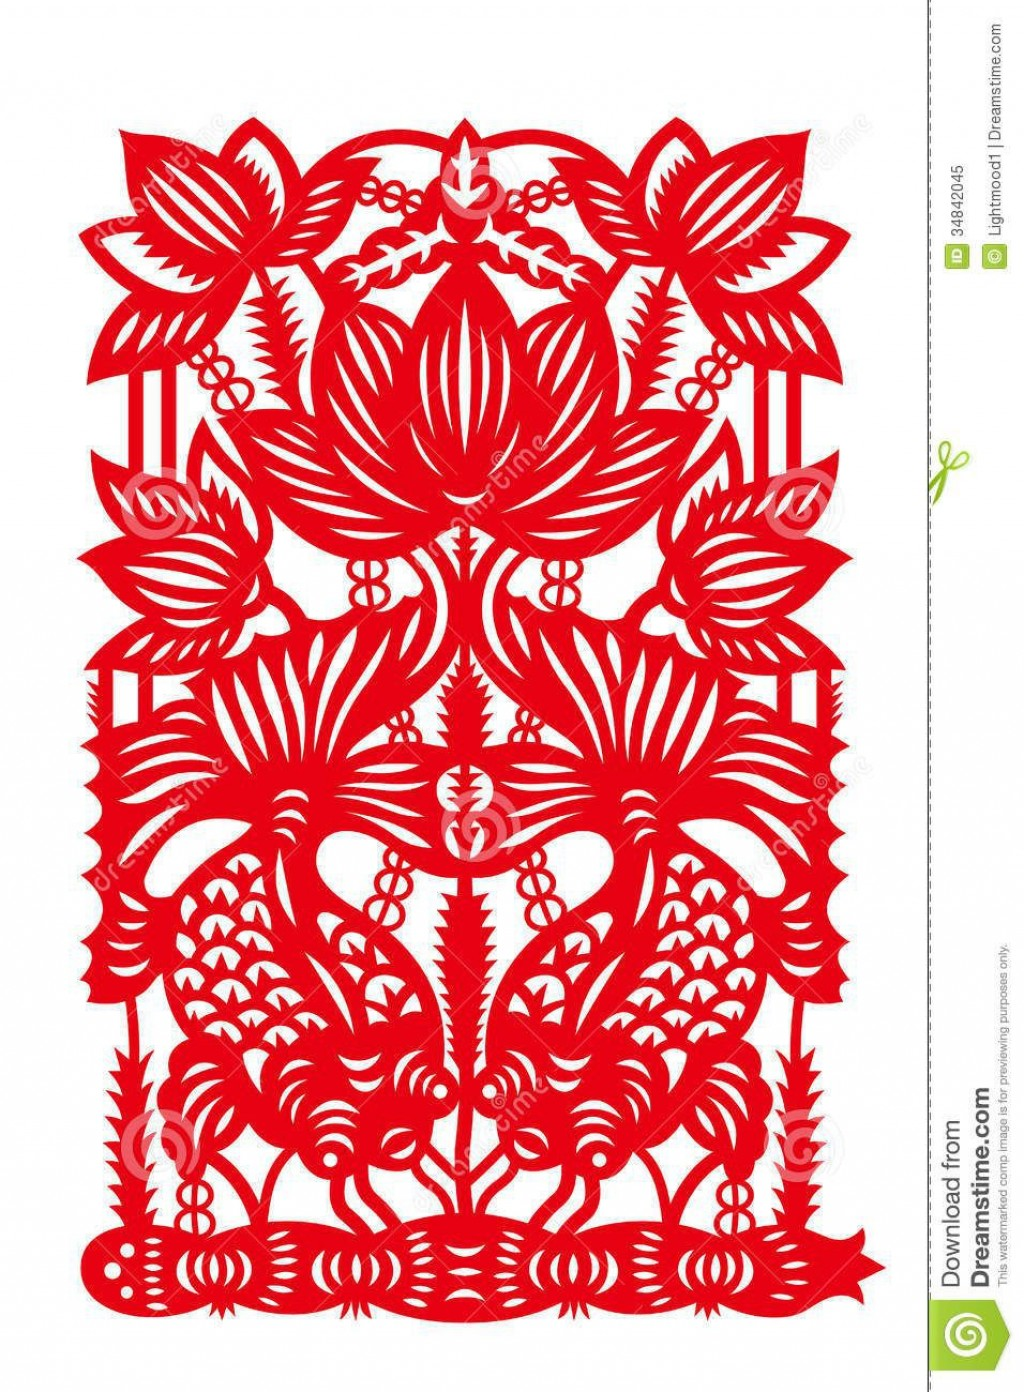 000 Excellent Chinese Paper Cut Template Idea Large